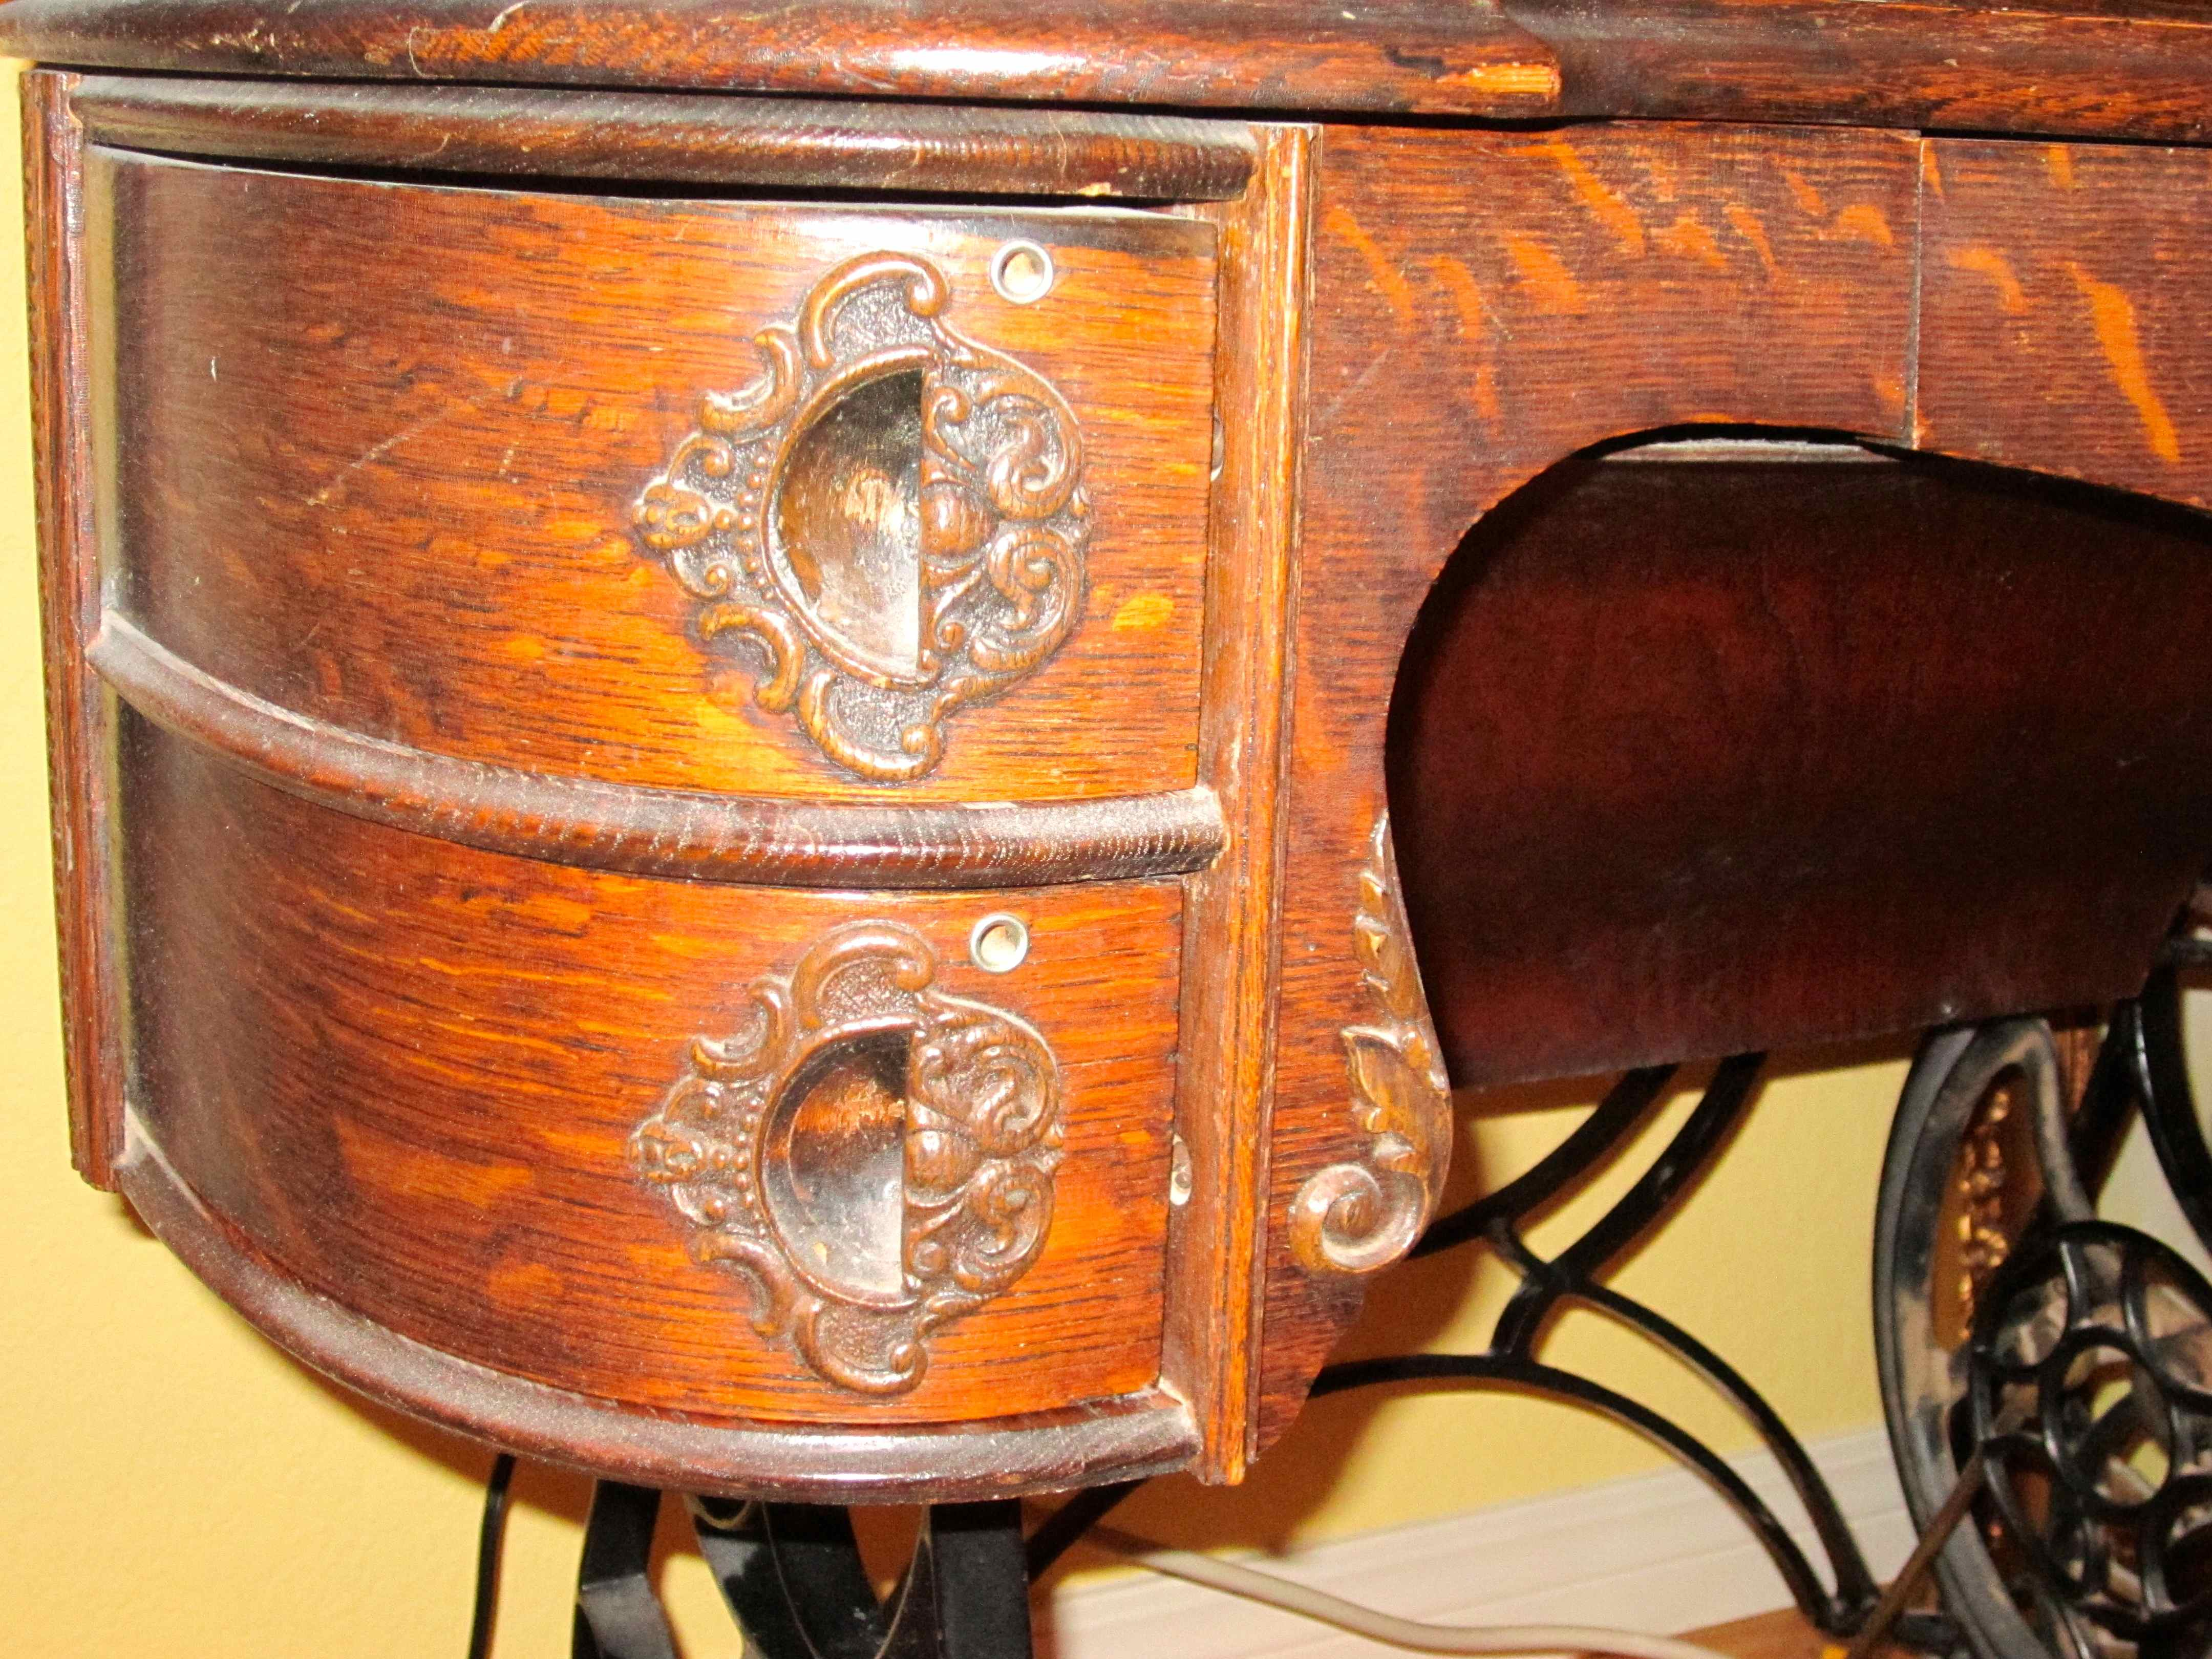 Name:  Curved drawers on the cabinet-The Bartlett.jpg Views: 1048 Size:  950.8 KB